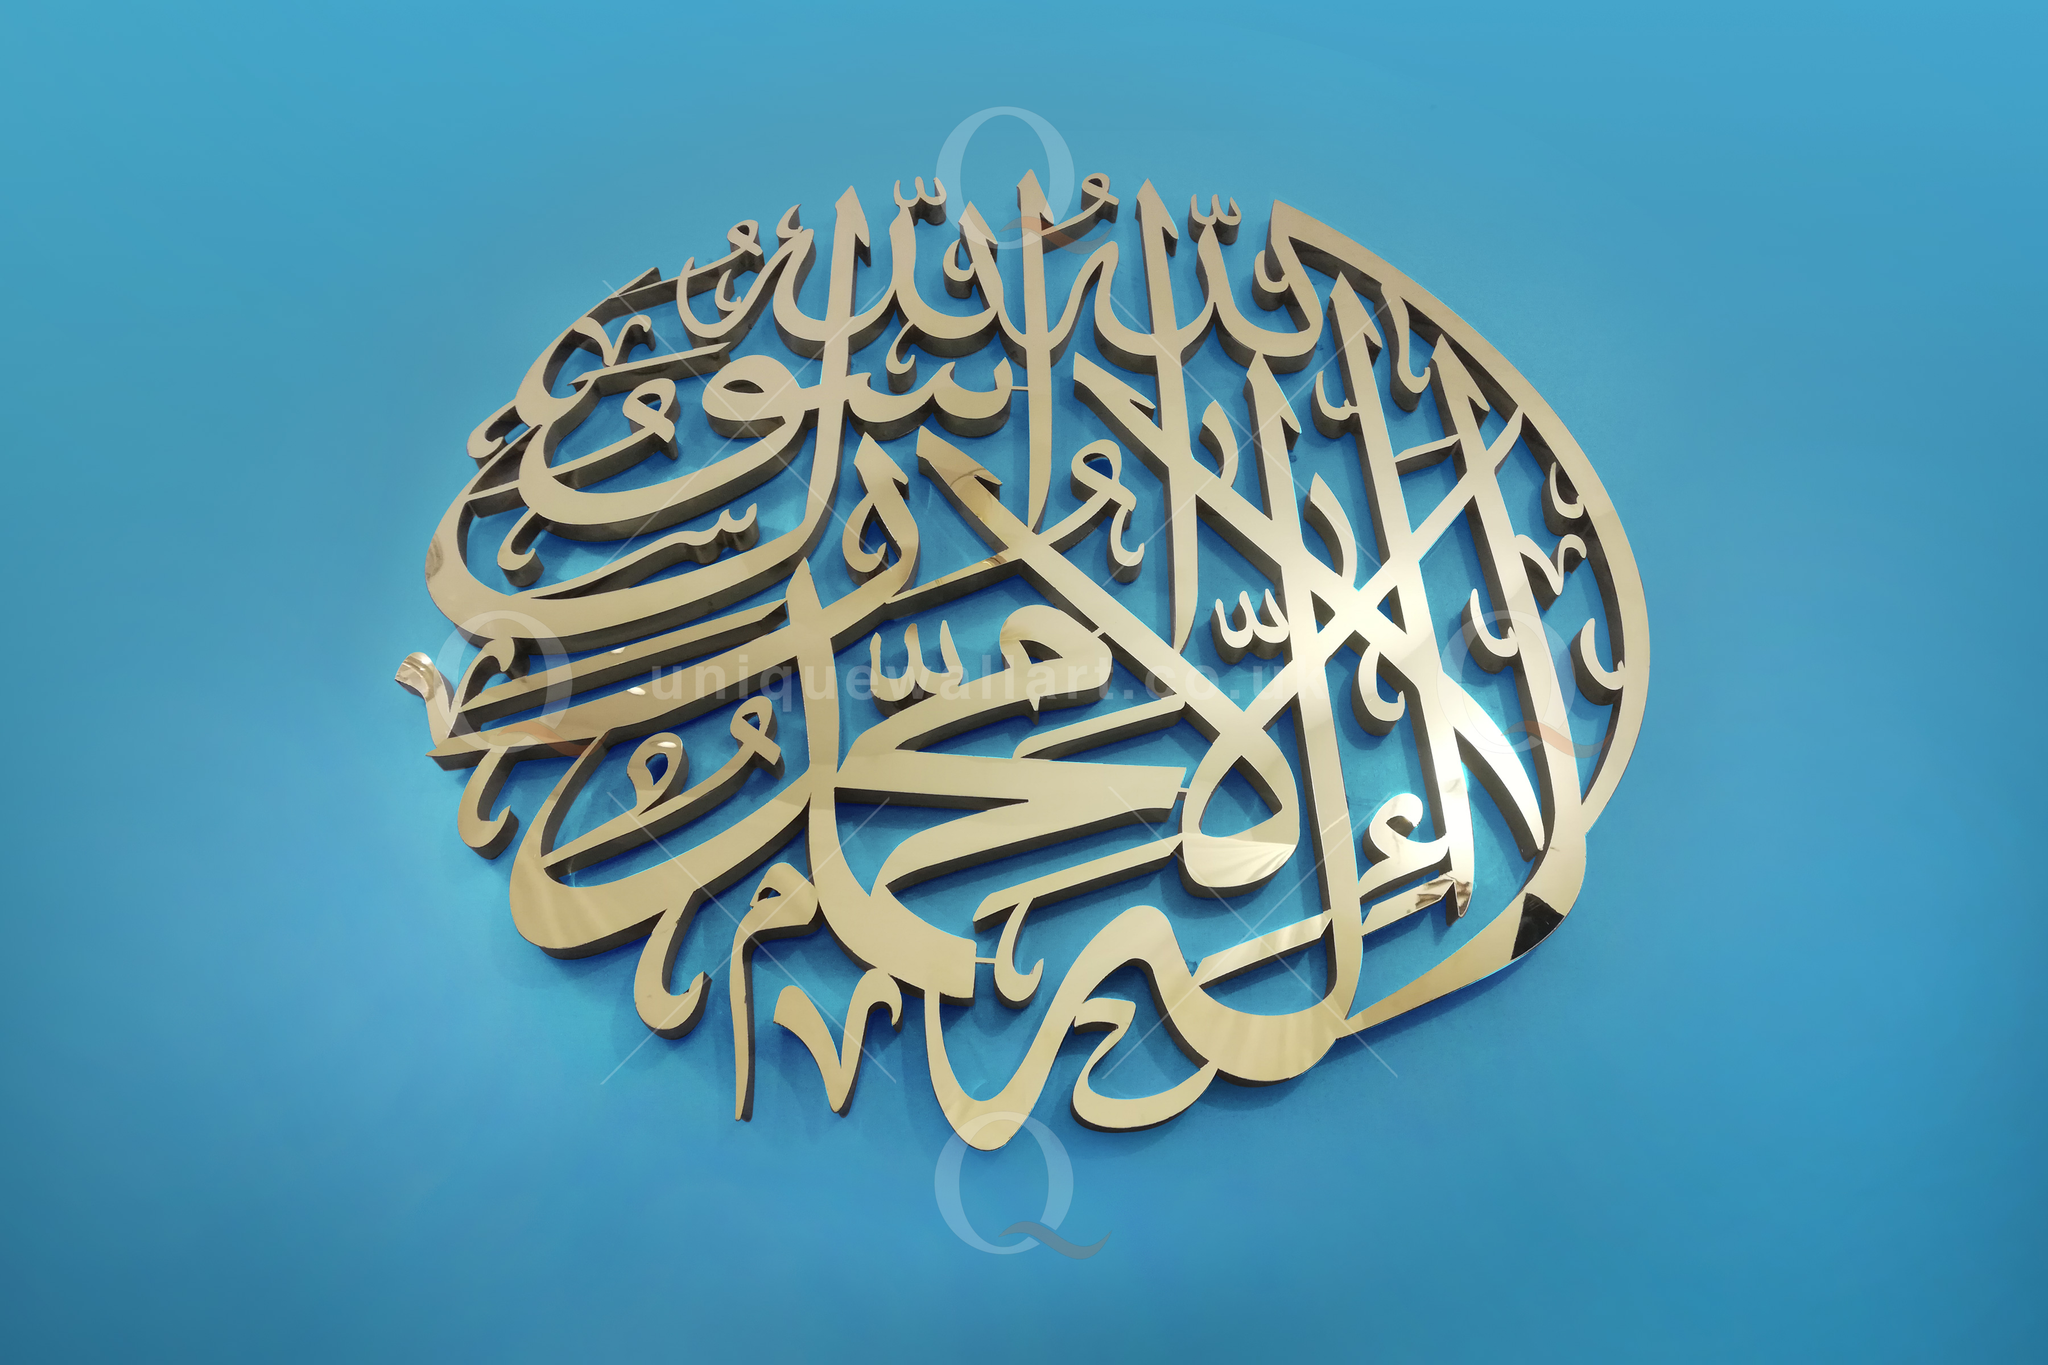 Shahada Kalima Plated Calligraphy Wall Decor Stainless Steel